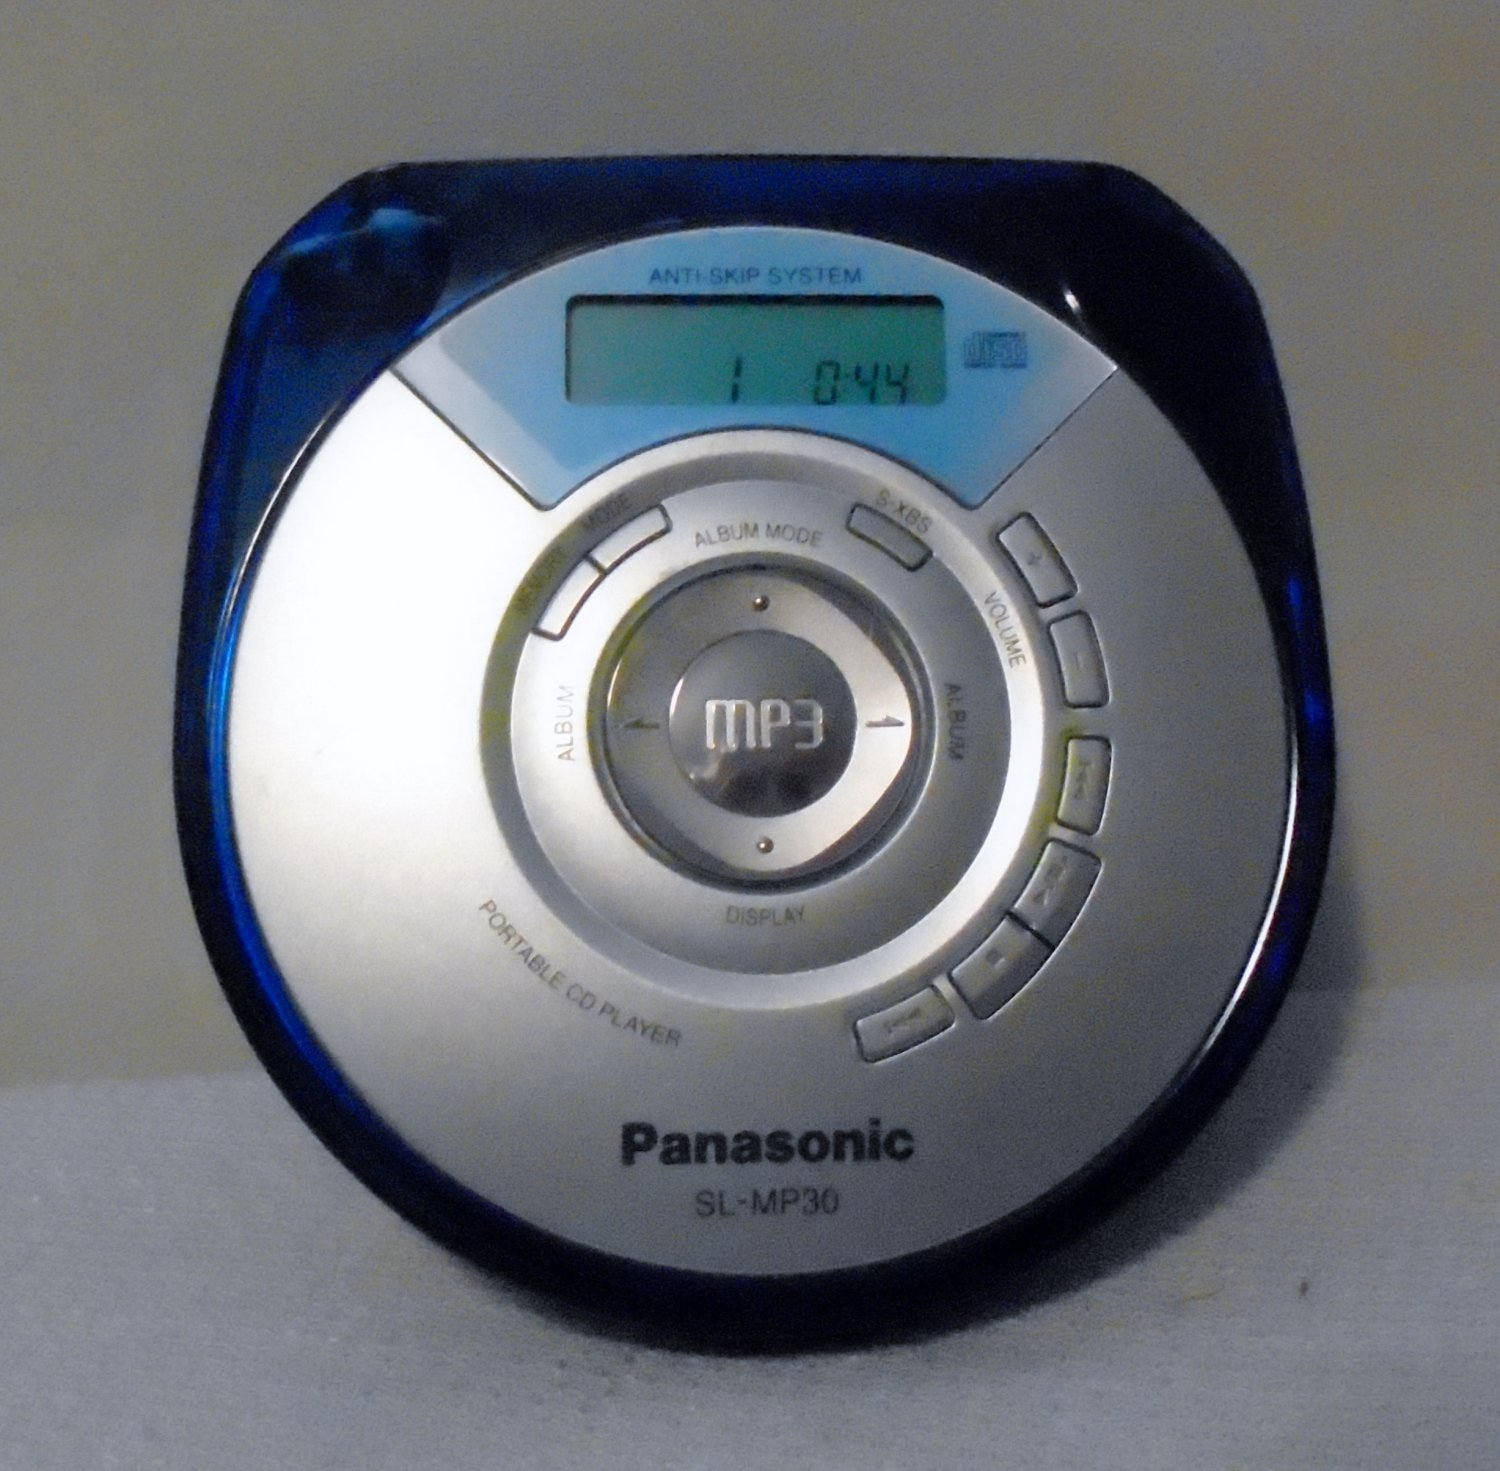 "Panasonic SL-MP 30 ""Walkman - type"" CD  PLAYER Anti Skip System"